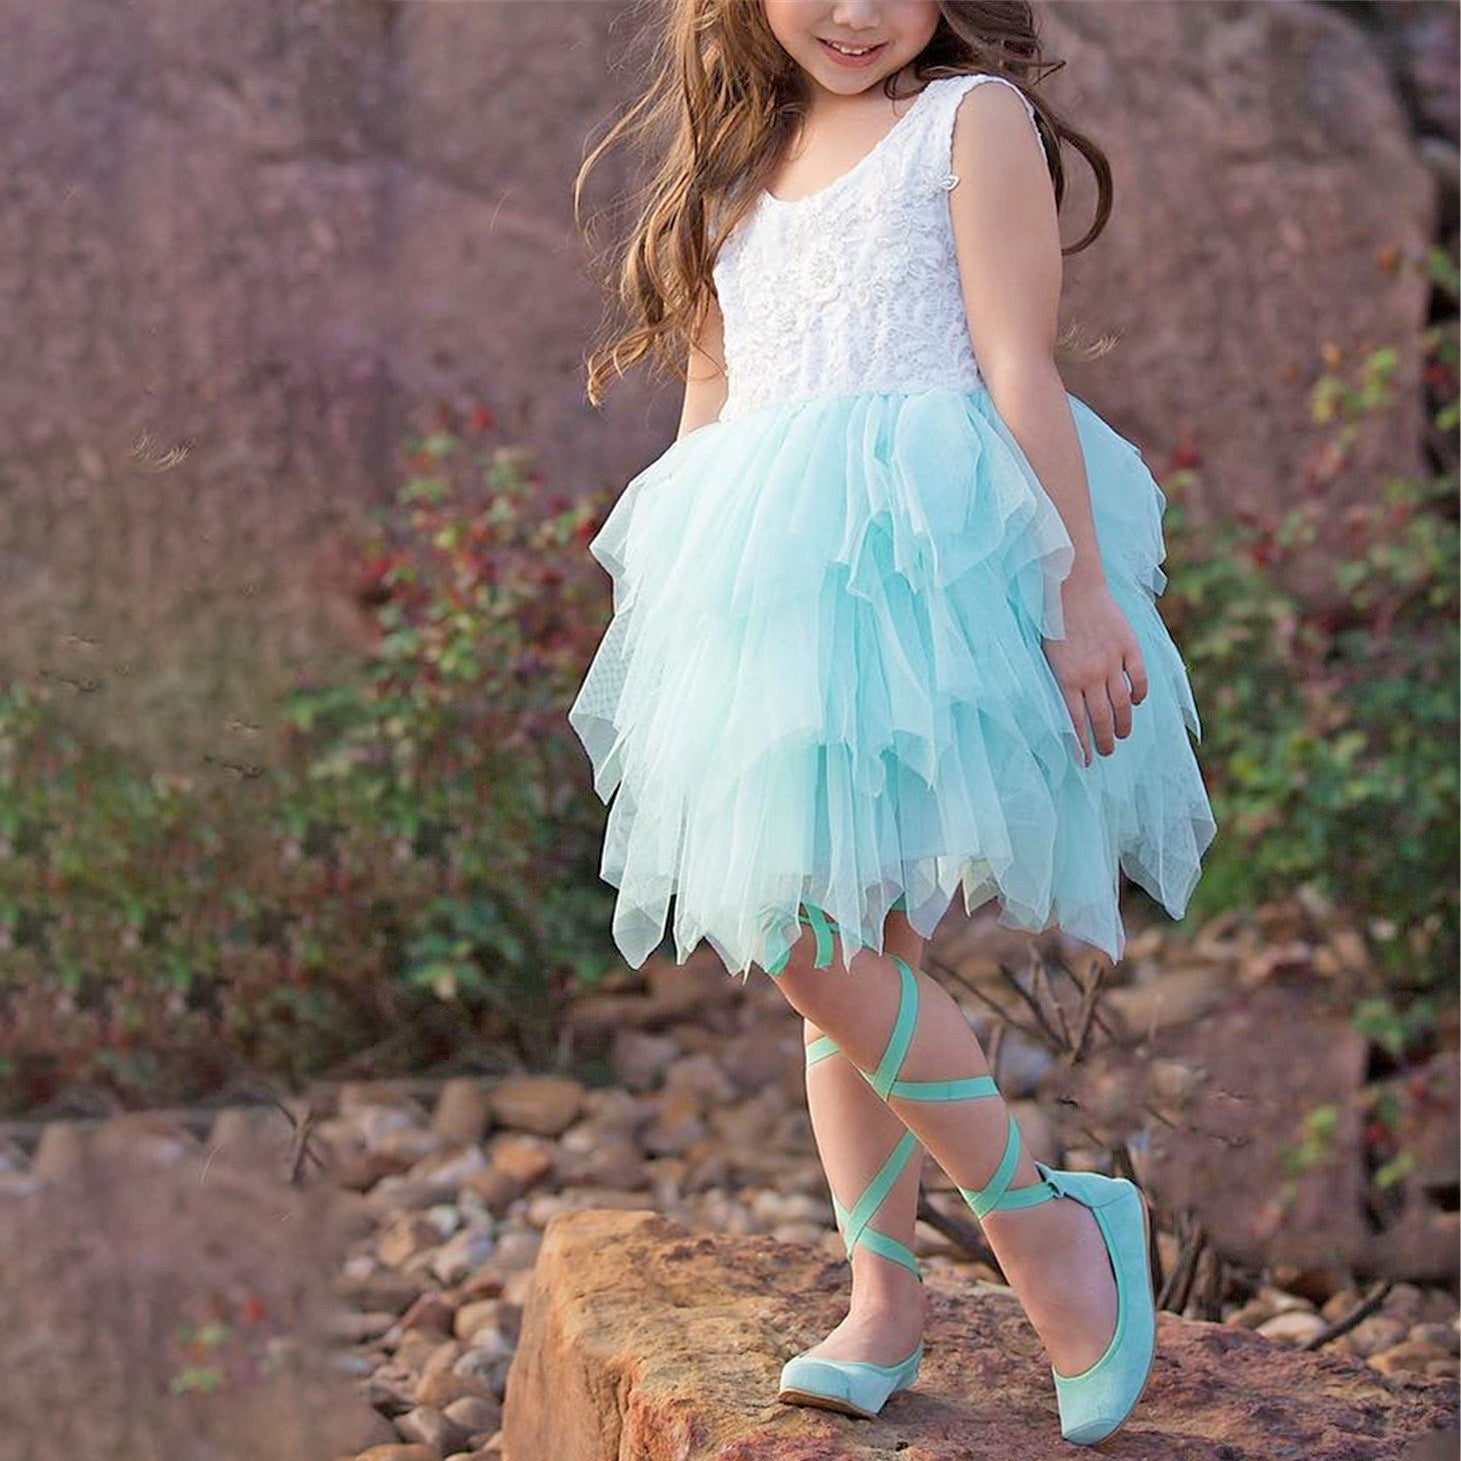 Boho Dreams Flower Girl Dress with MInt coloured tulle